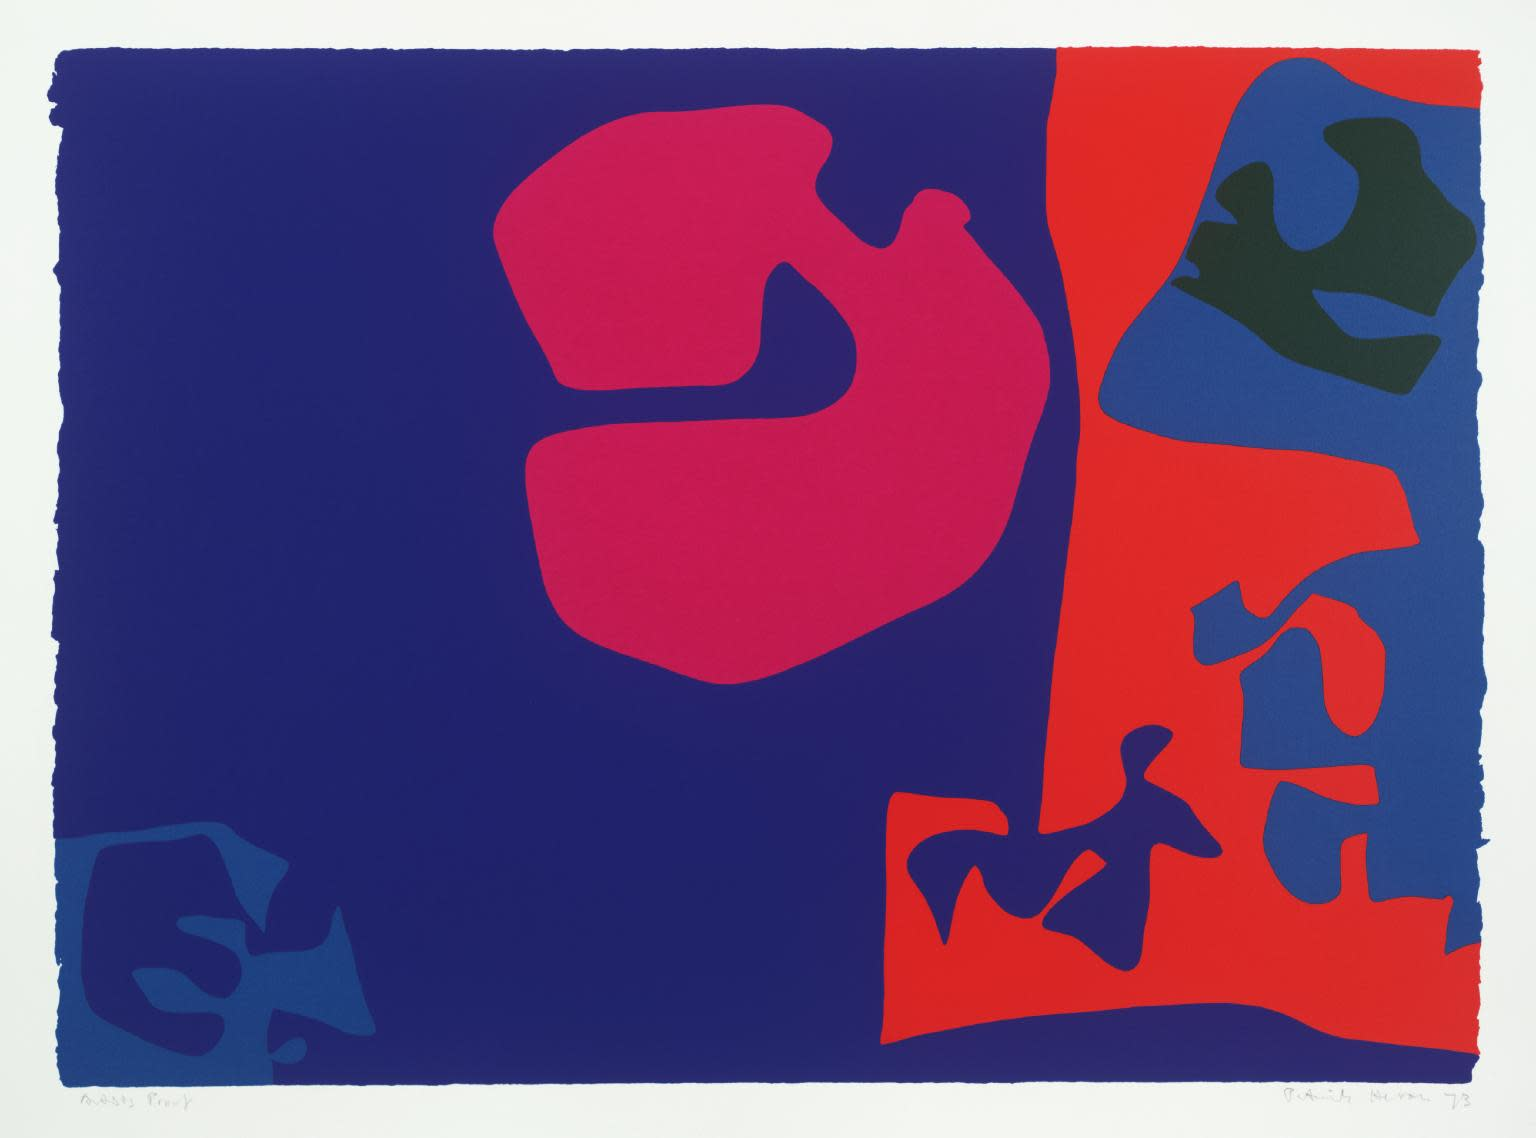 "<span class=""link fancybox-details-link""><a href=""/artists/74-patrick-heron/works/1009/"">View Detail Page</a></span><div class=""artist""><strong>Patrick Heron</strong></div> 1920 - 1999 <div class=""title""><em>January 1973: Plate 17</em>, 1973</div> <div class=""signed_and_dated"">signed and dated in pencil, verso is the publishers stamp<br /> from the edition of 72</div> <div class=""medium"">screenprint</div> <div class=""dimensions"">68 x 92.3cm</div>"